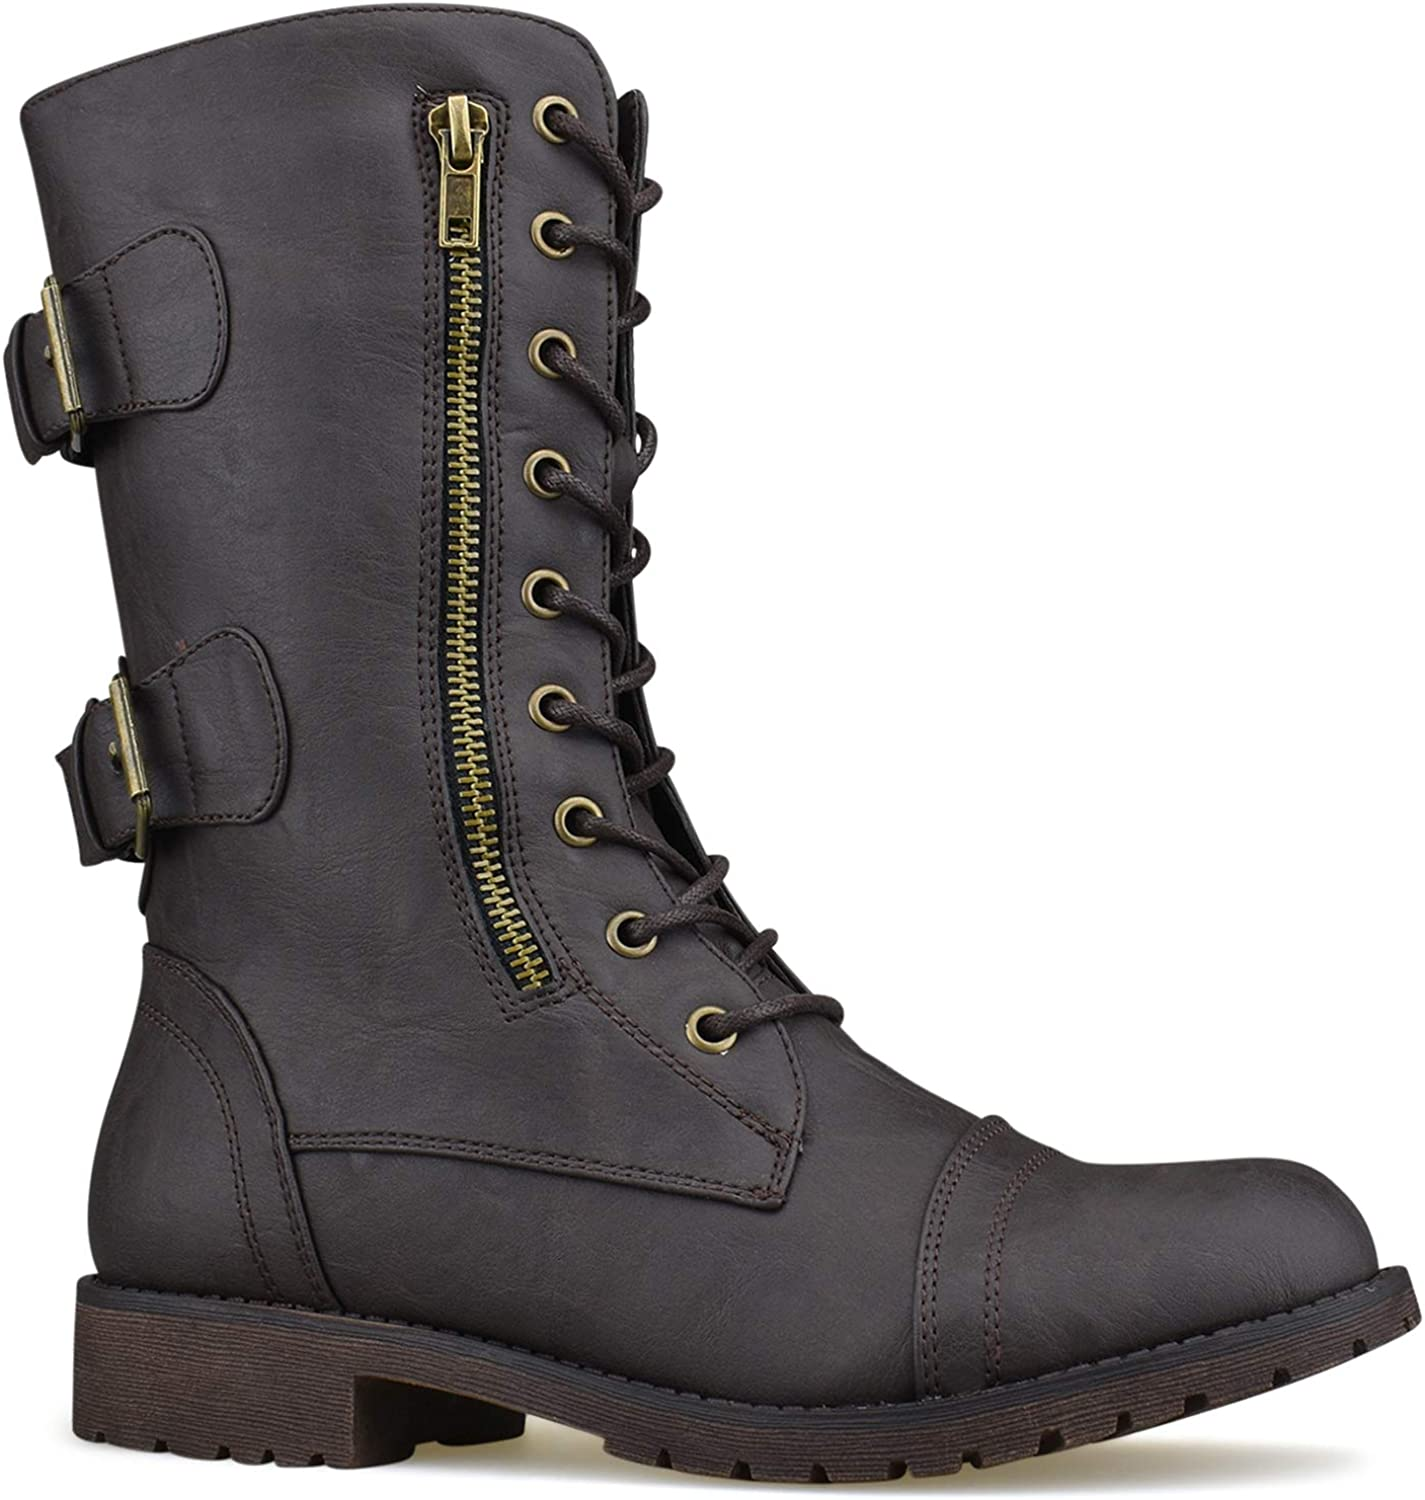 Premier Standard Women's Military Ankle Lace up Buckle Combat Boots Mid Knee High Exclusive Booties